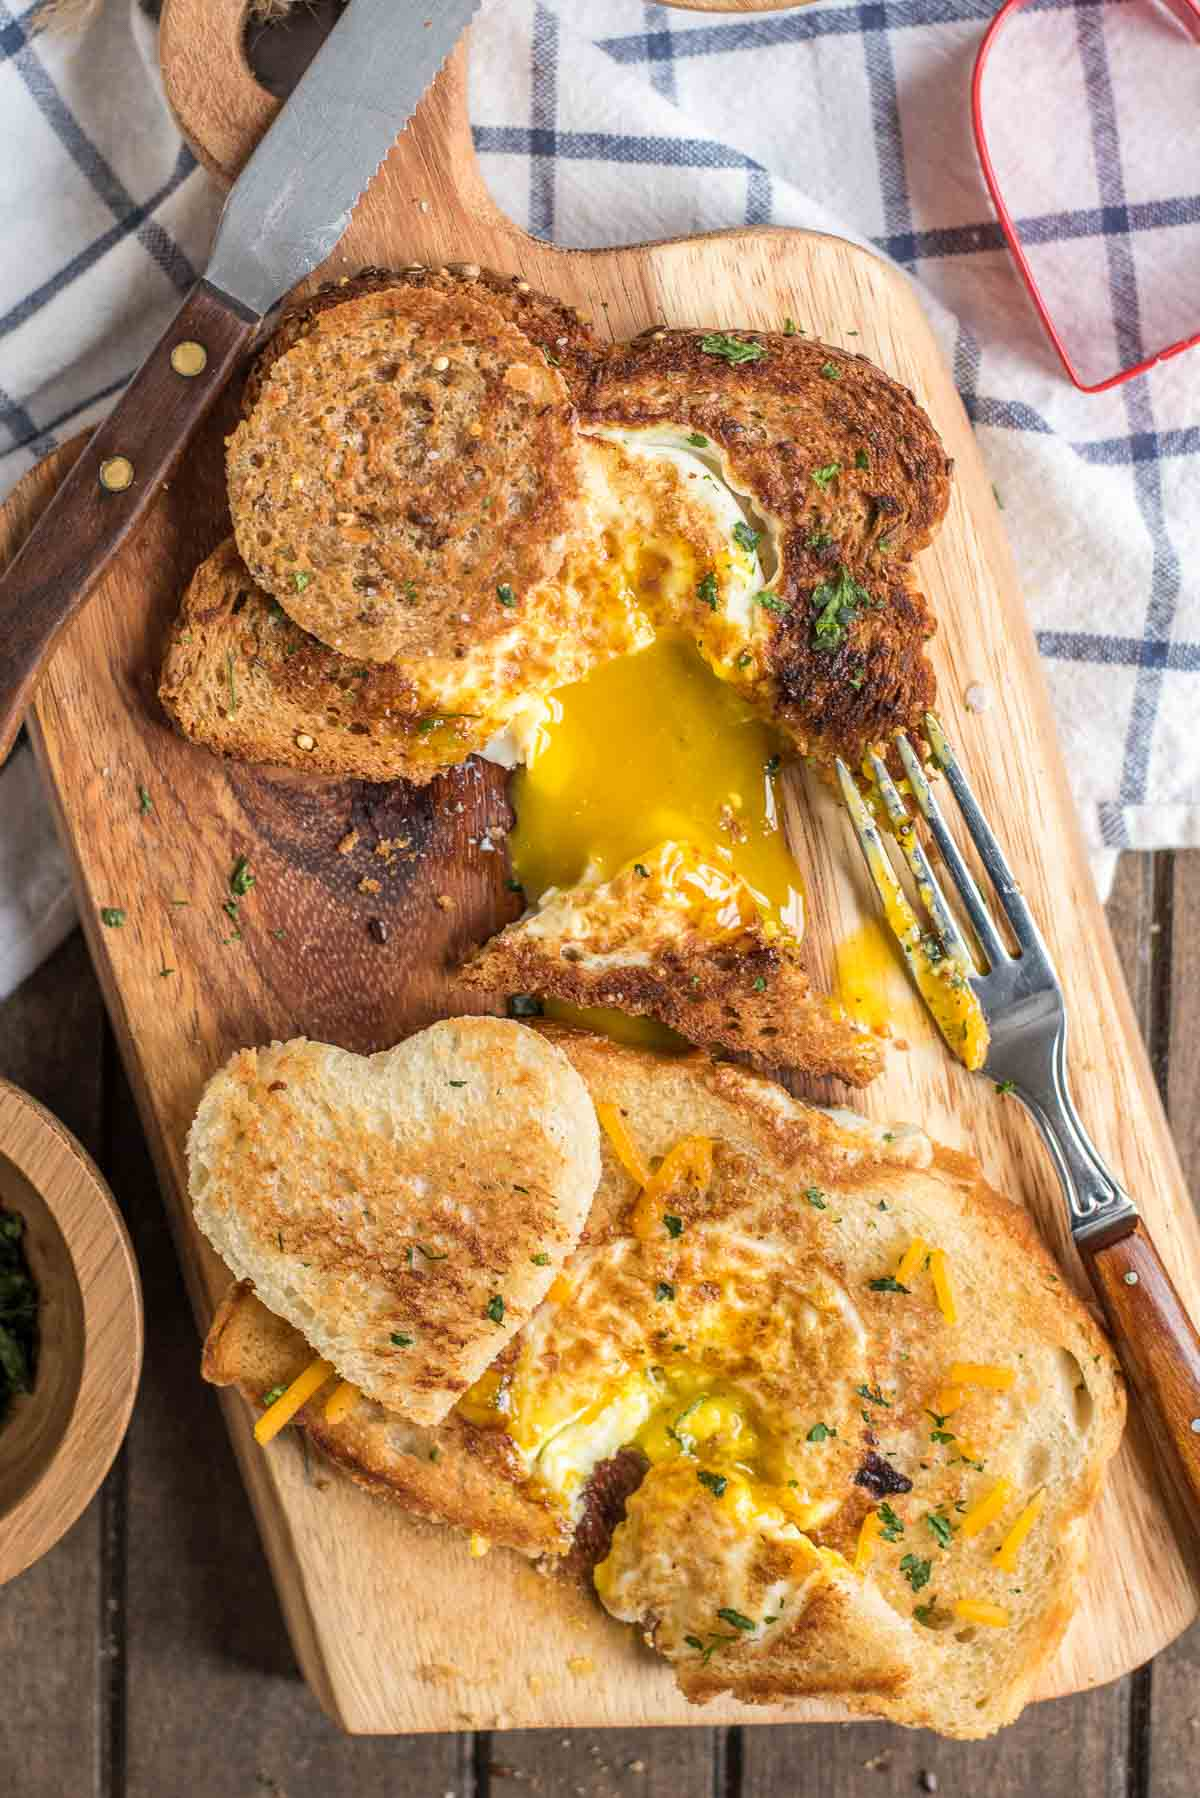 There is nothing better (or easier) than Eggs in a Basket for a quick breakfast or lazy brinner!